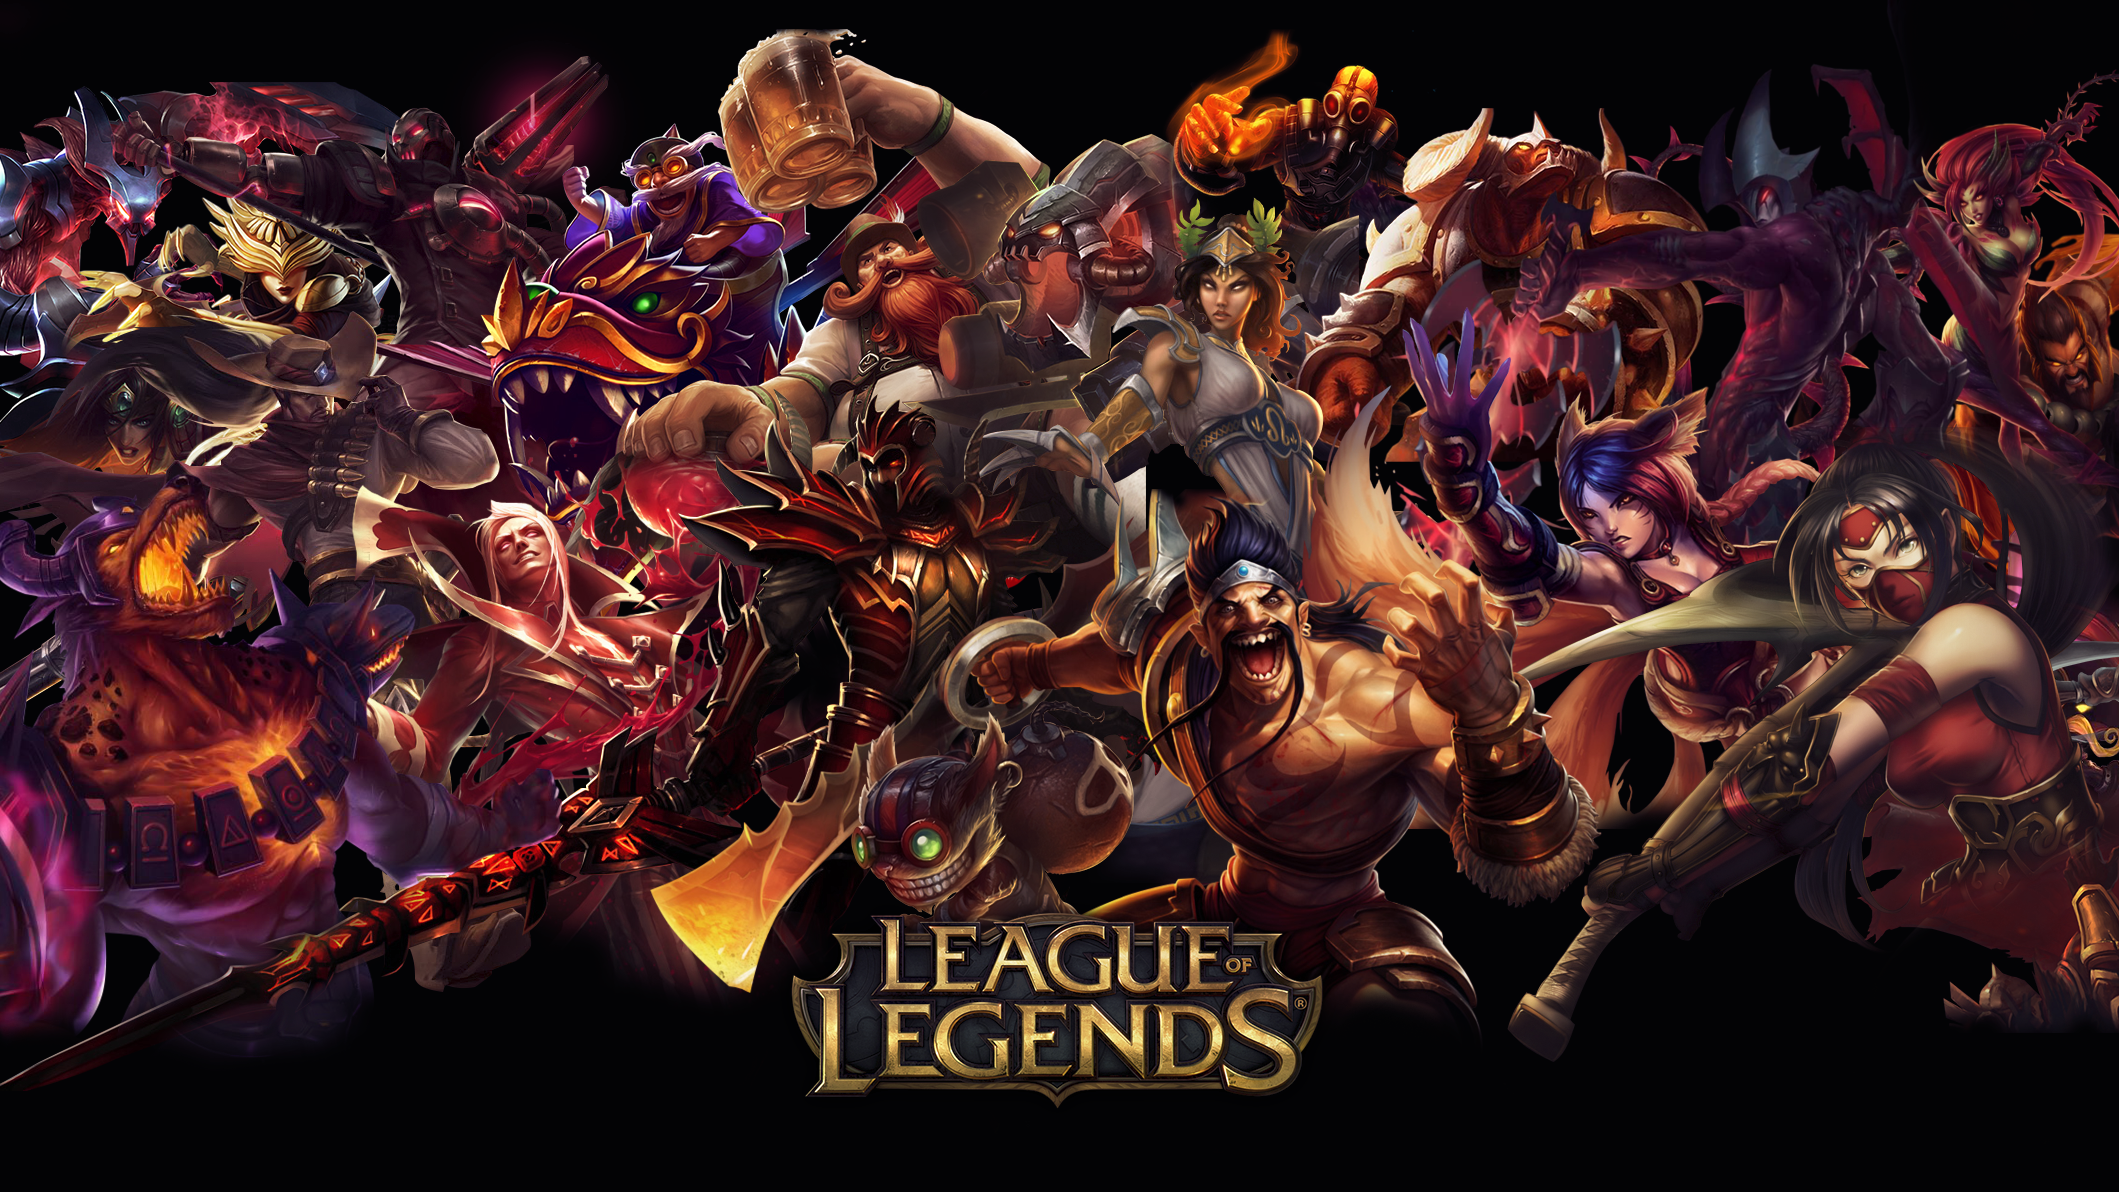 League of Legends to be one of the best Online Battle game